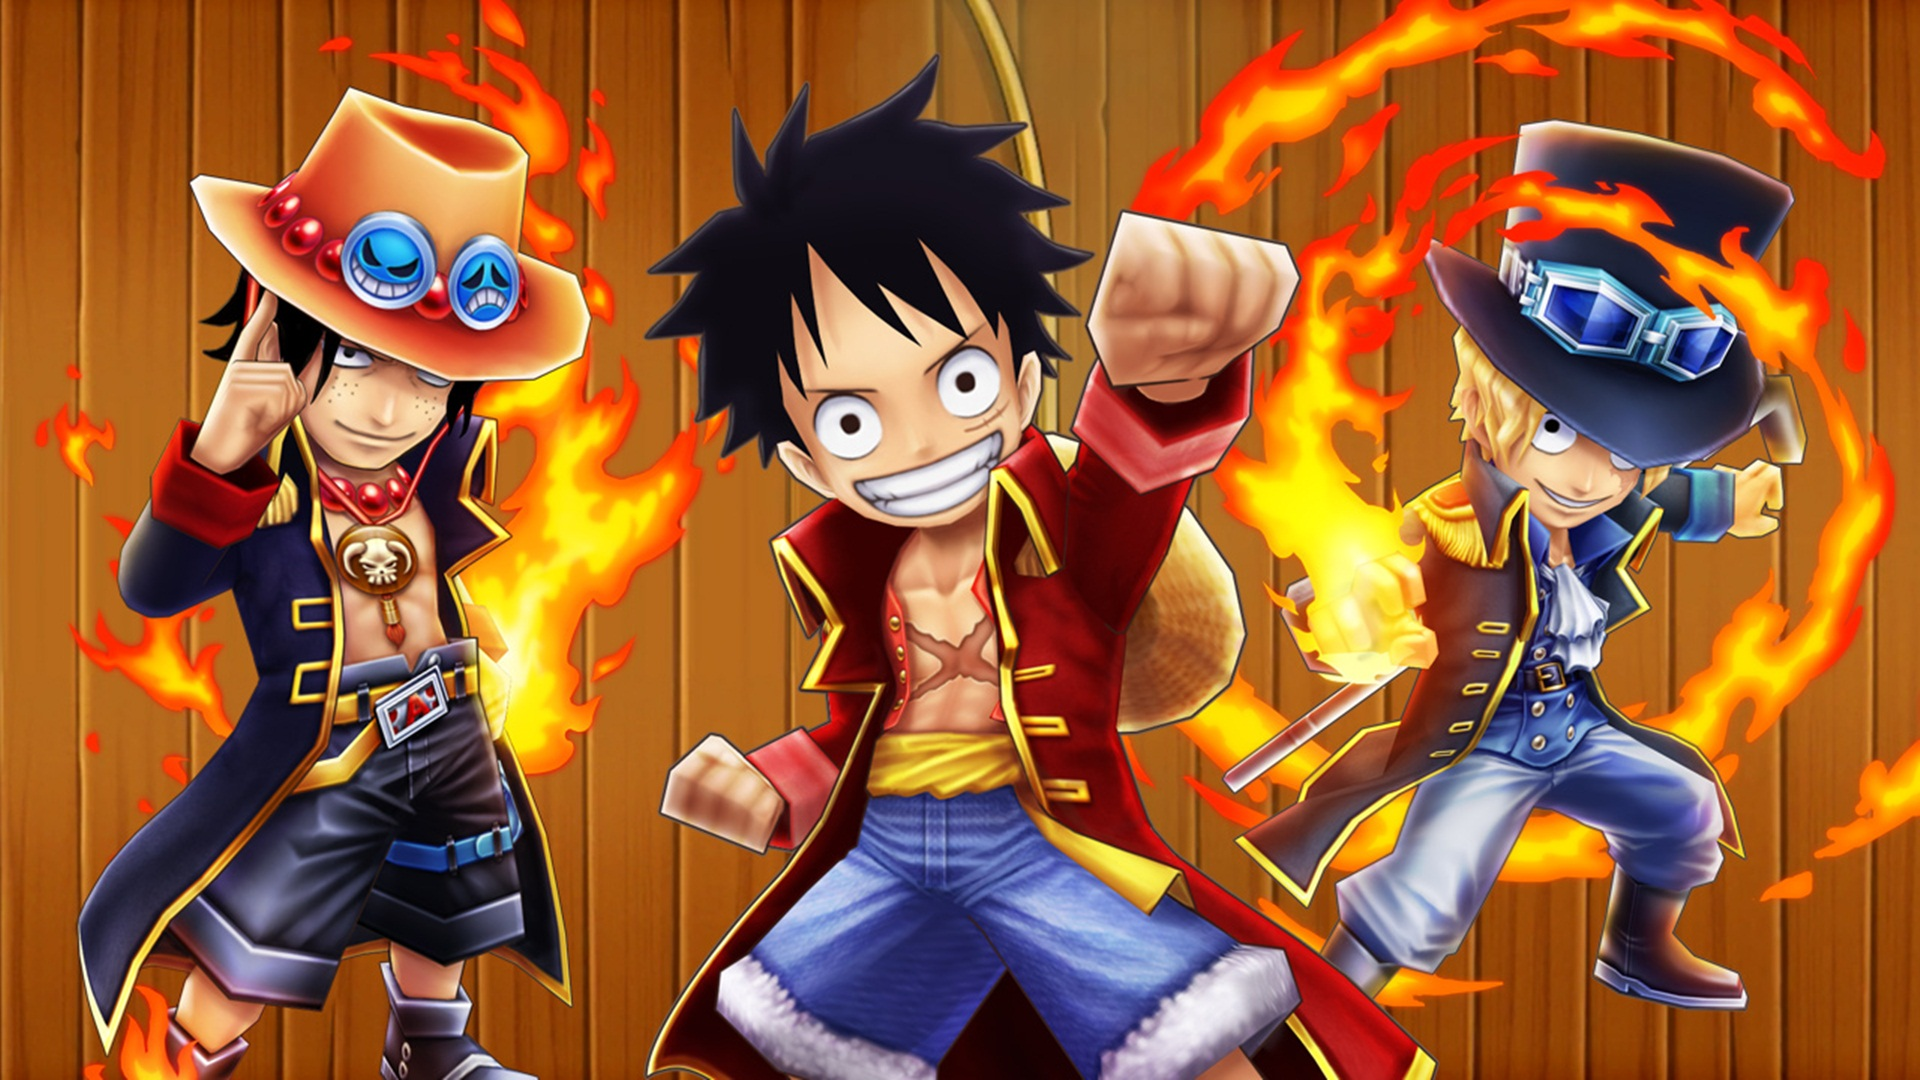 One Piece Best Wallpaper Best Wallpaper One Piece 1920x1080 Wallpaper Teahub Io